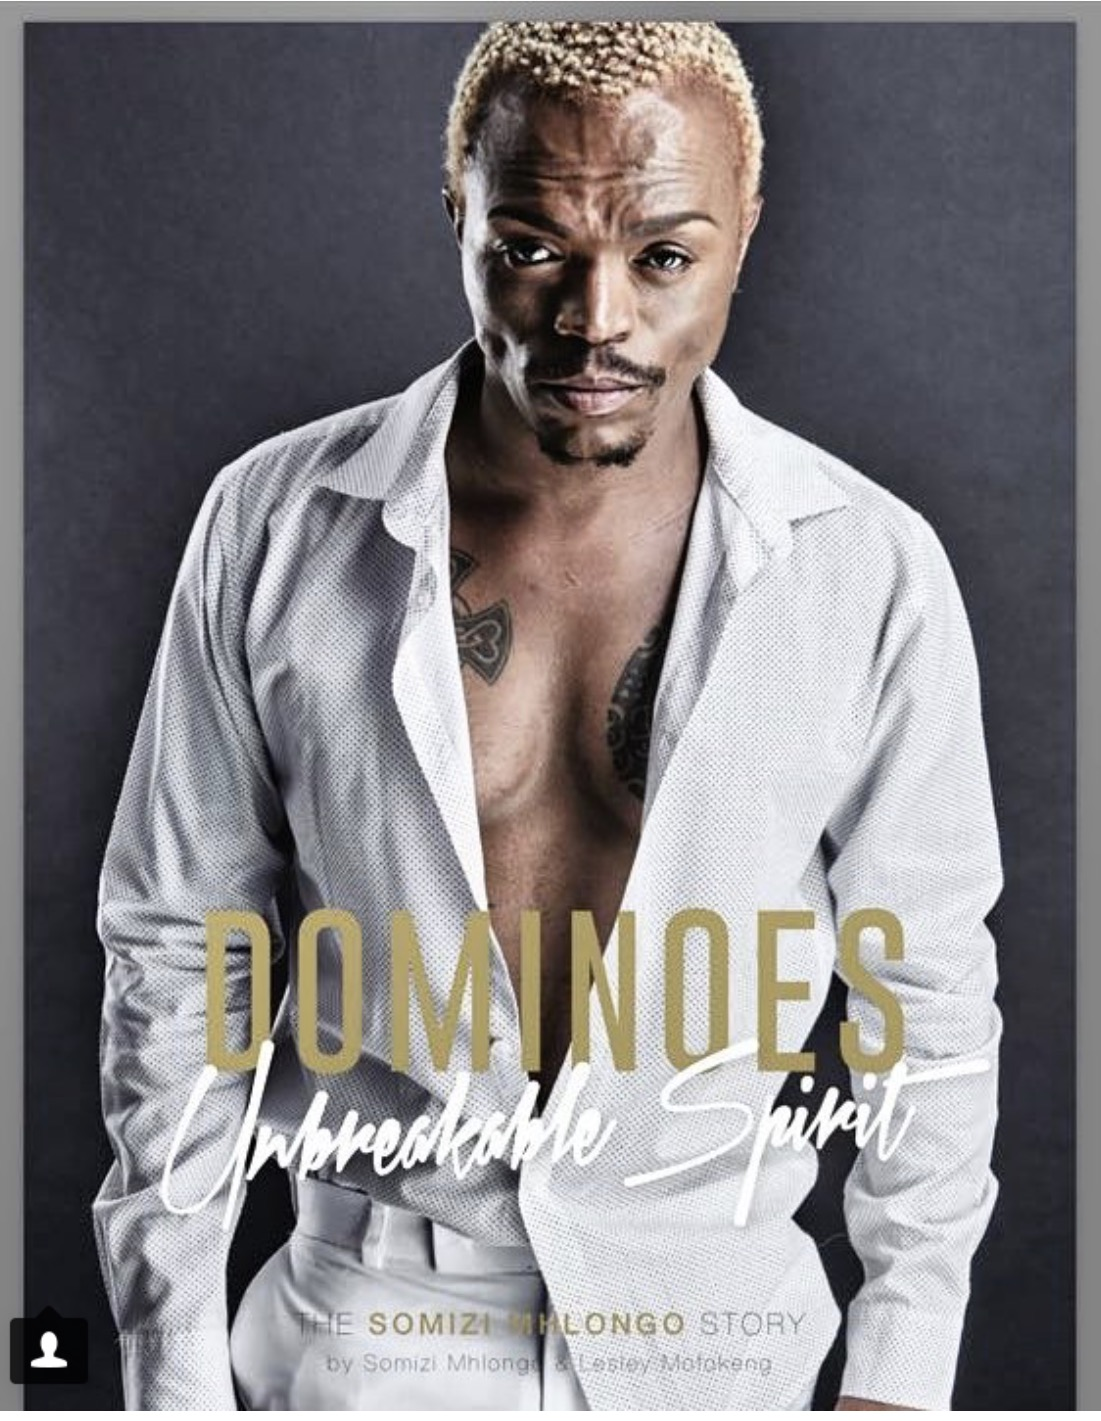 Somizi-Dominoes